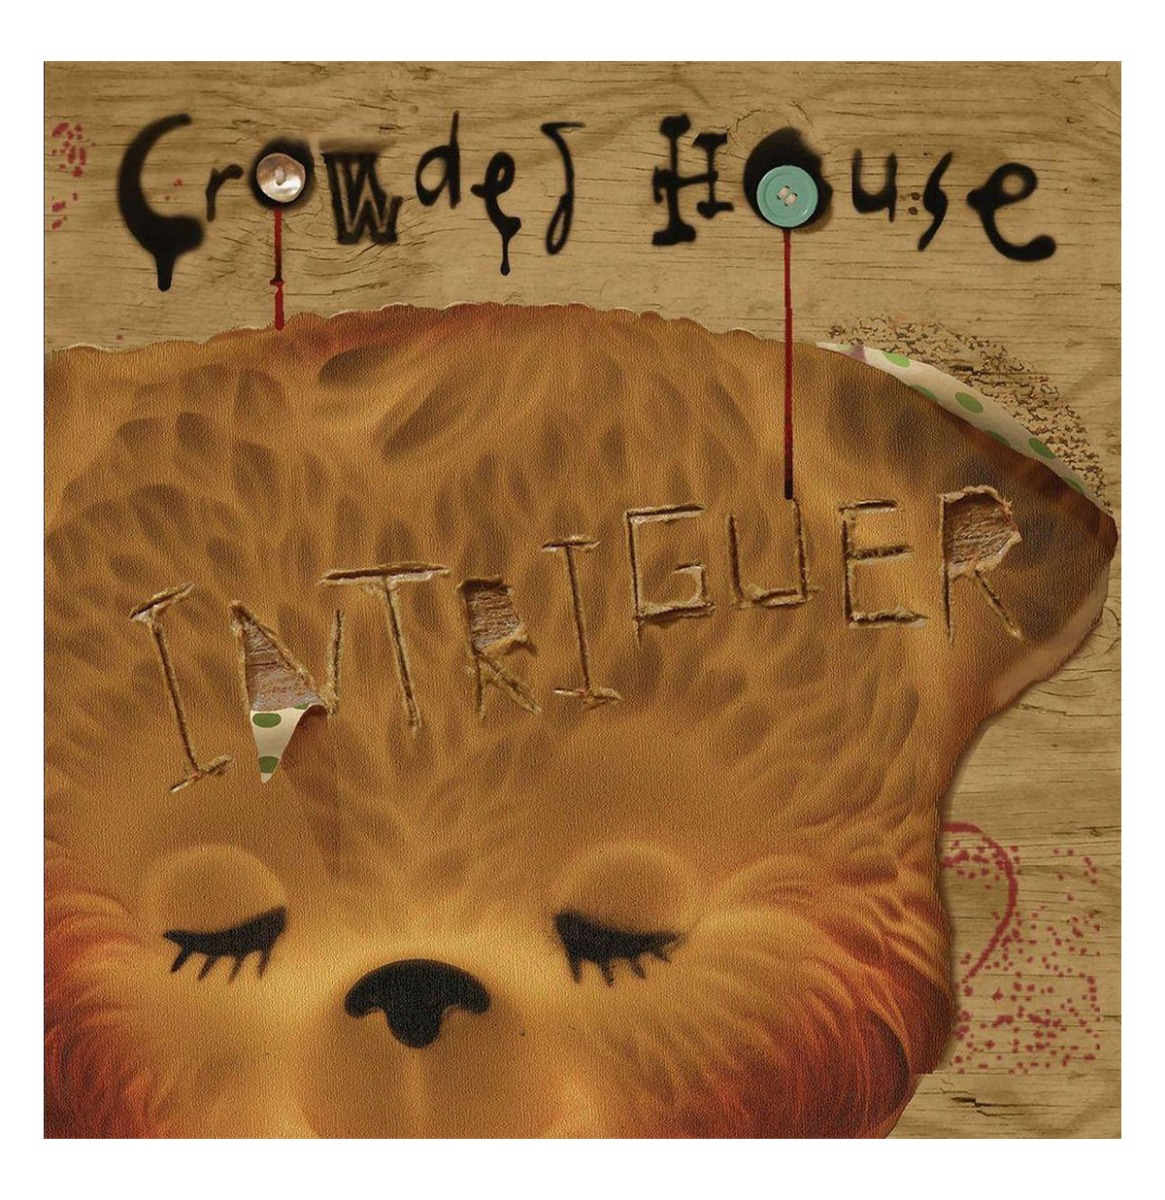 Crowded House Intriguer - LP